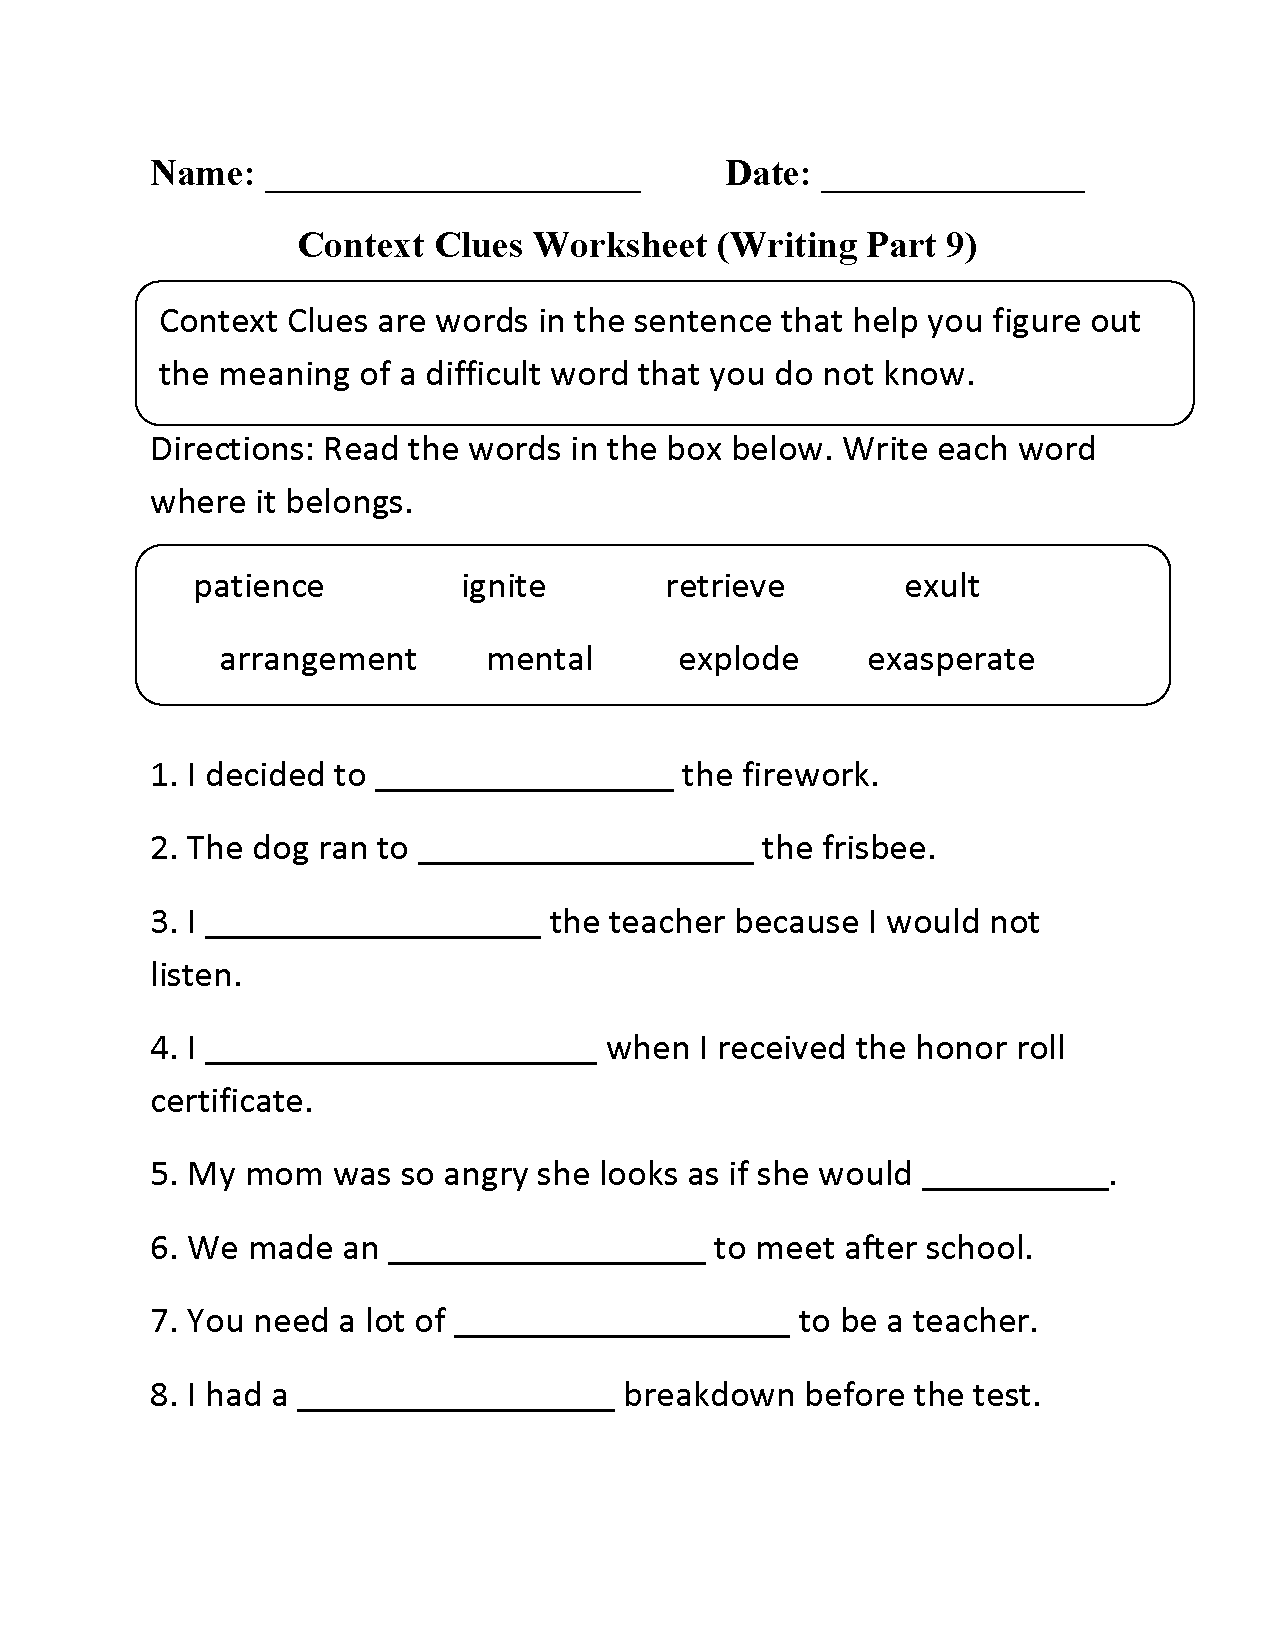 Context Clues Worksheet (fill in the blank and explain) | TpT